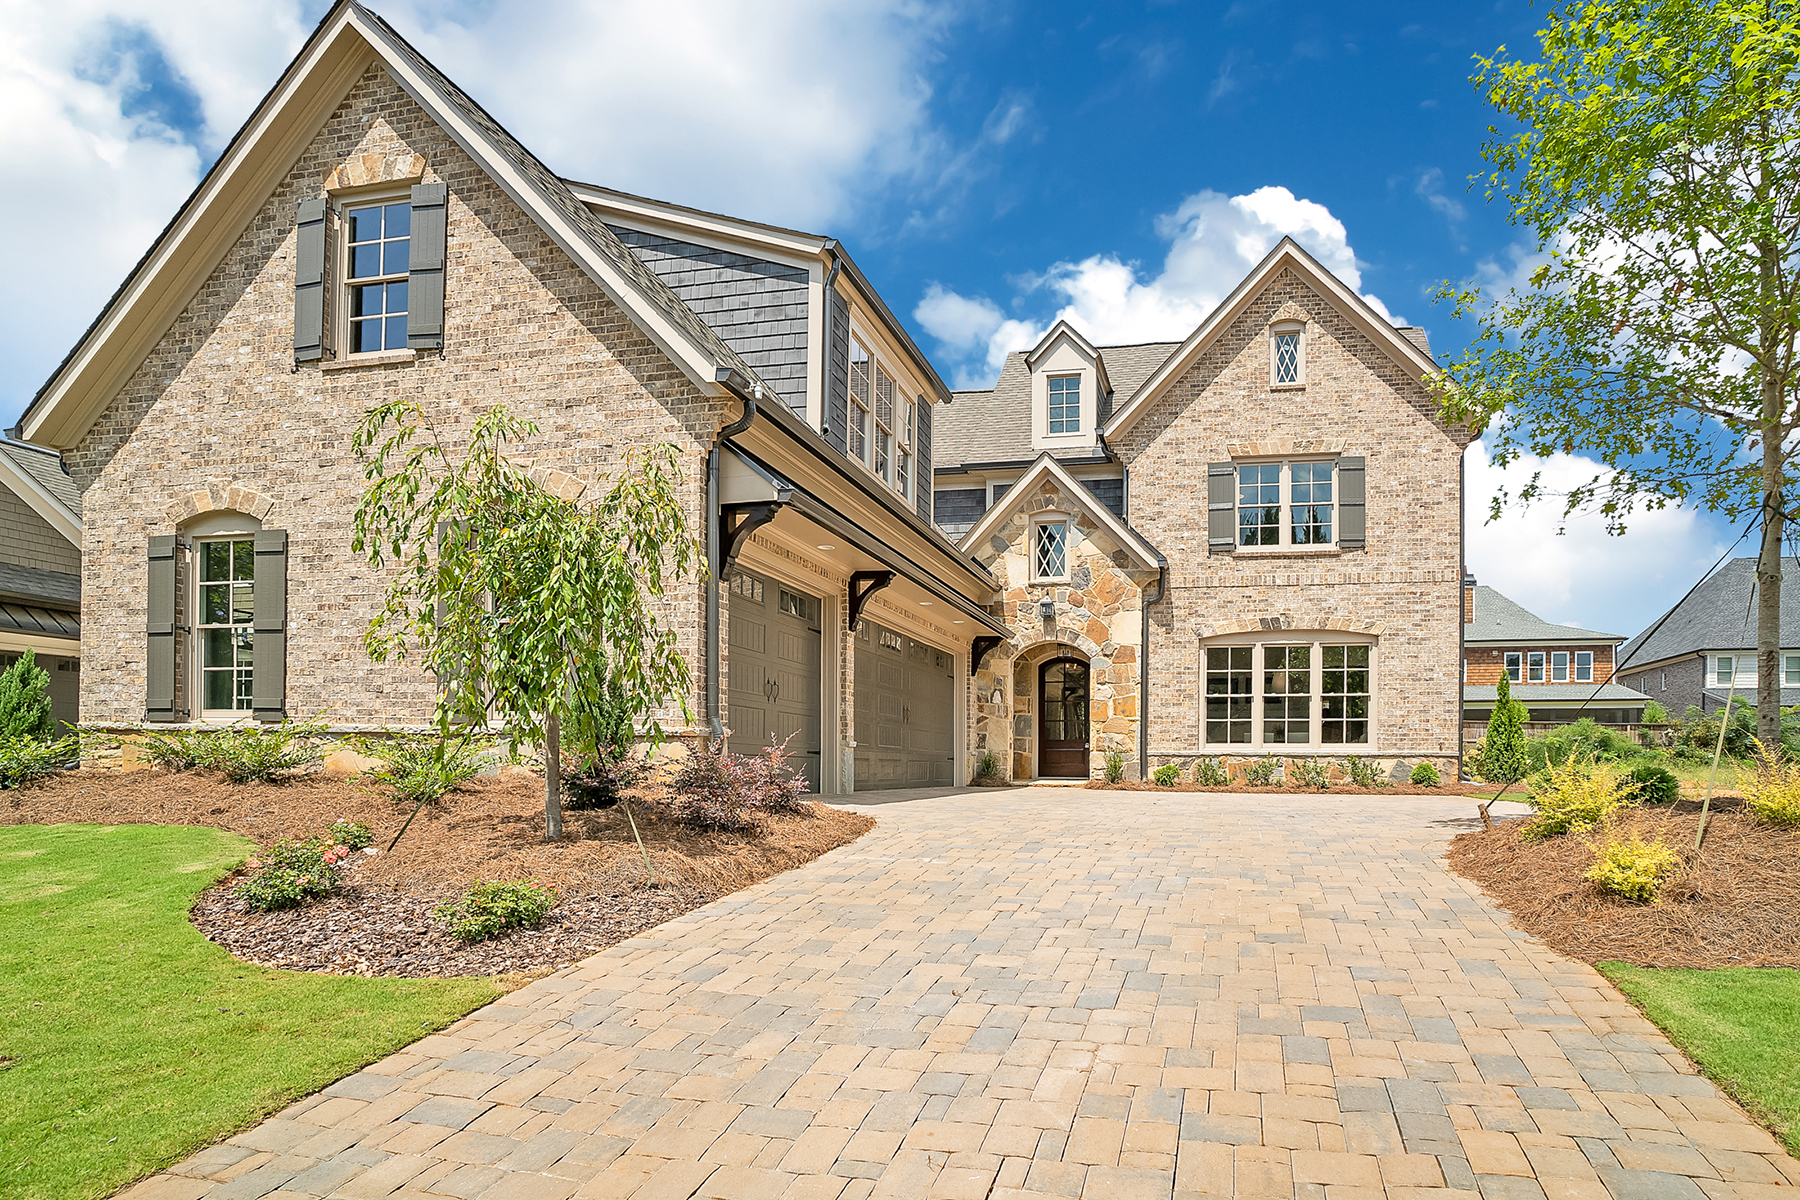 Single Family Homes for Active at New Luxury Home In The Heart Of East Cobb 4588 Oakside Point Marietta, Georgia 30067 United States